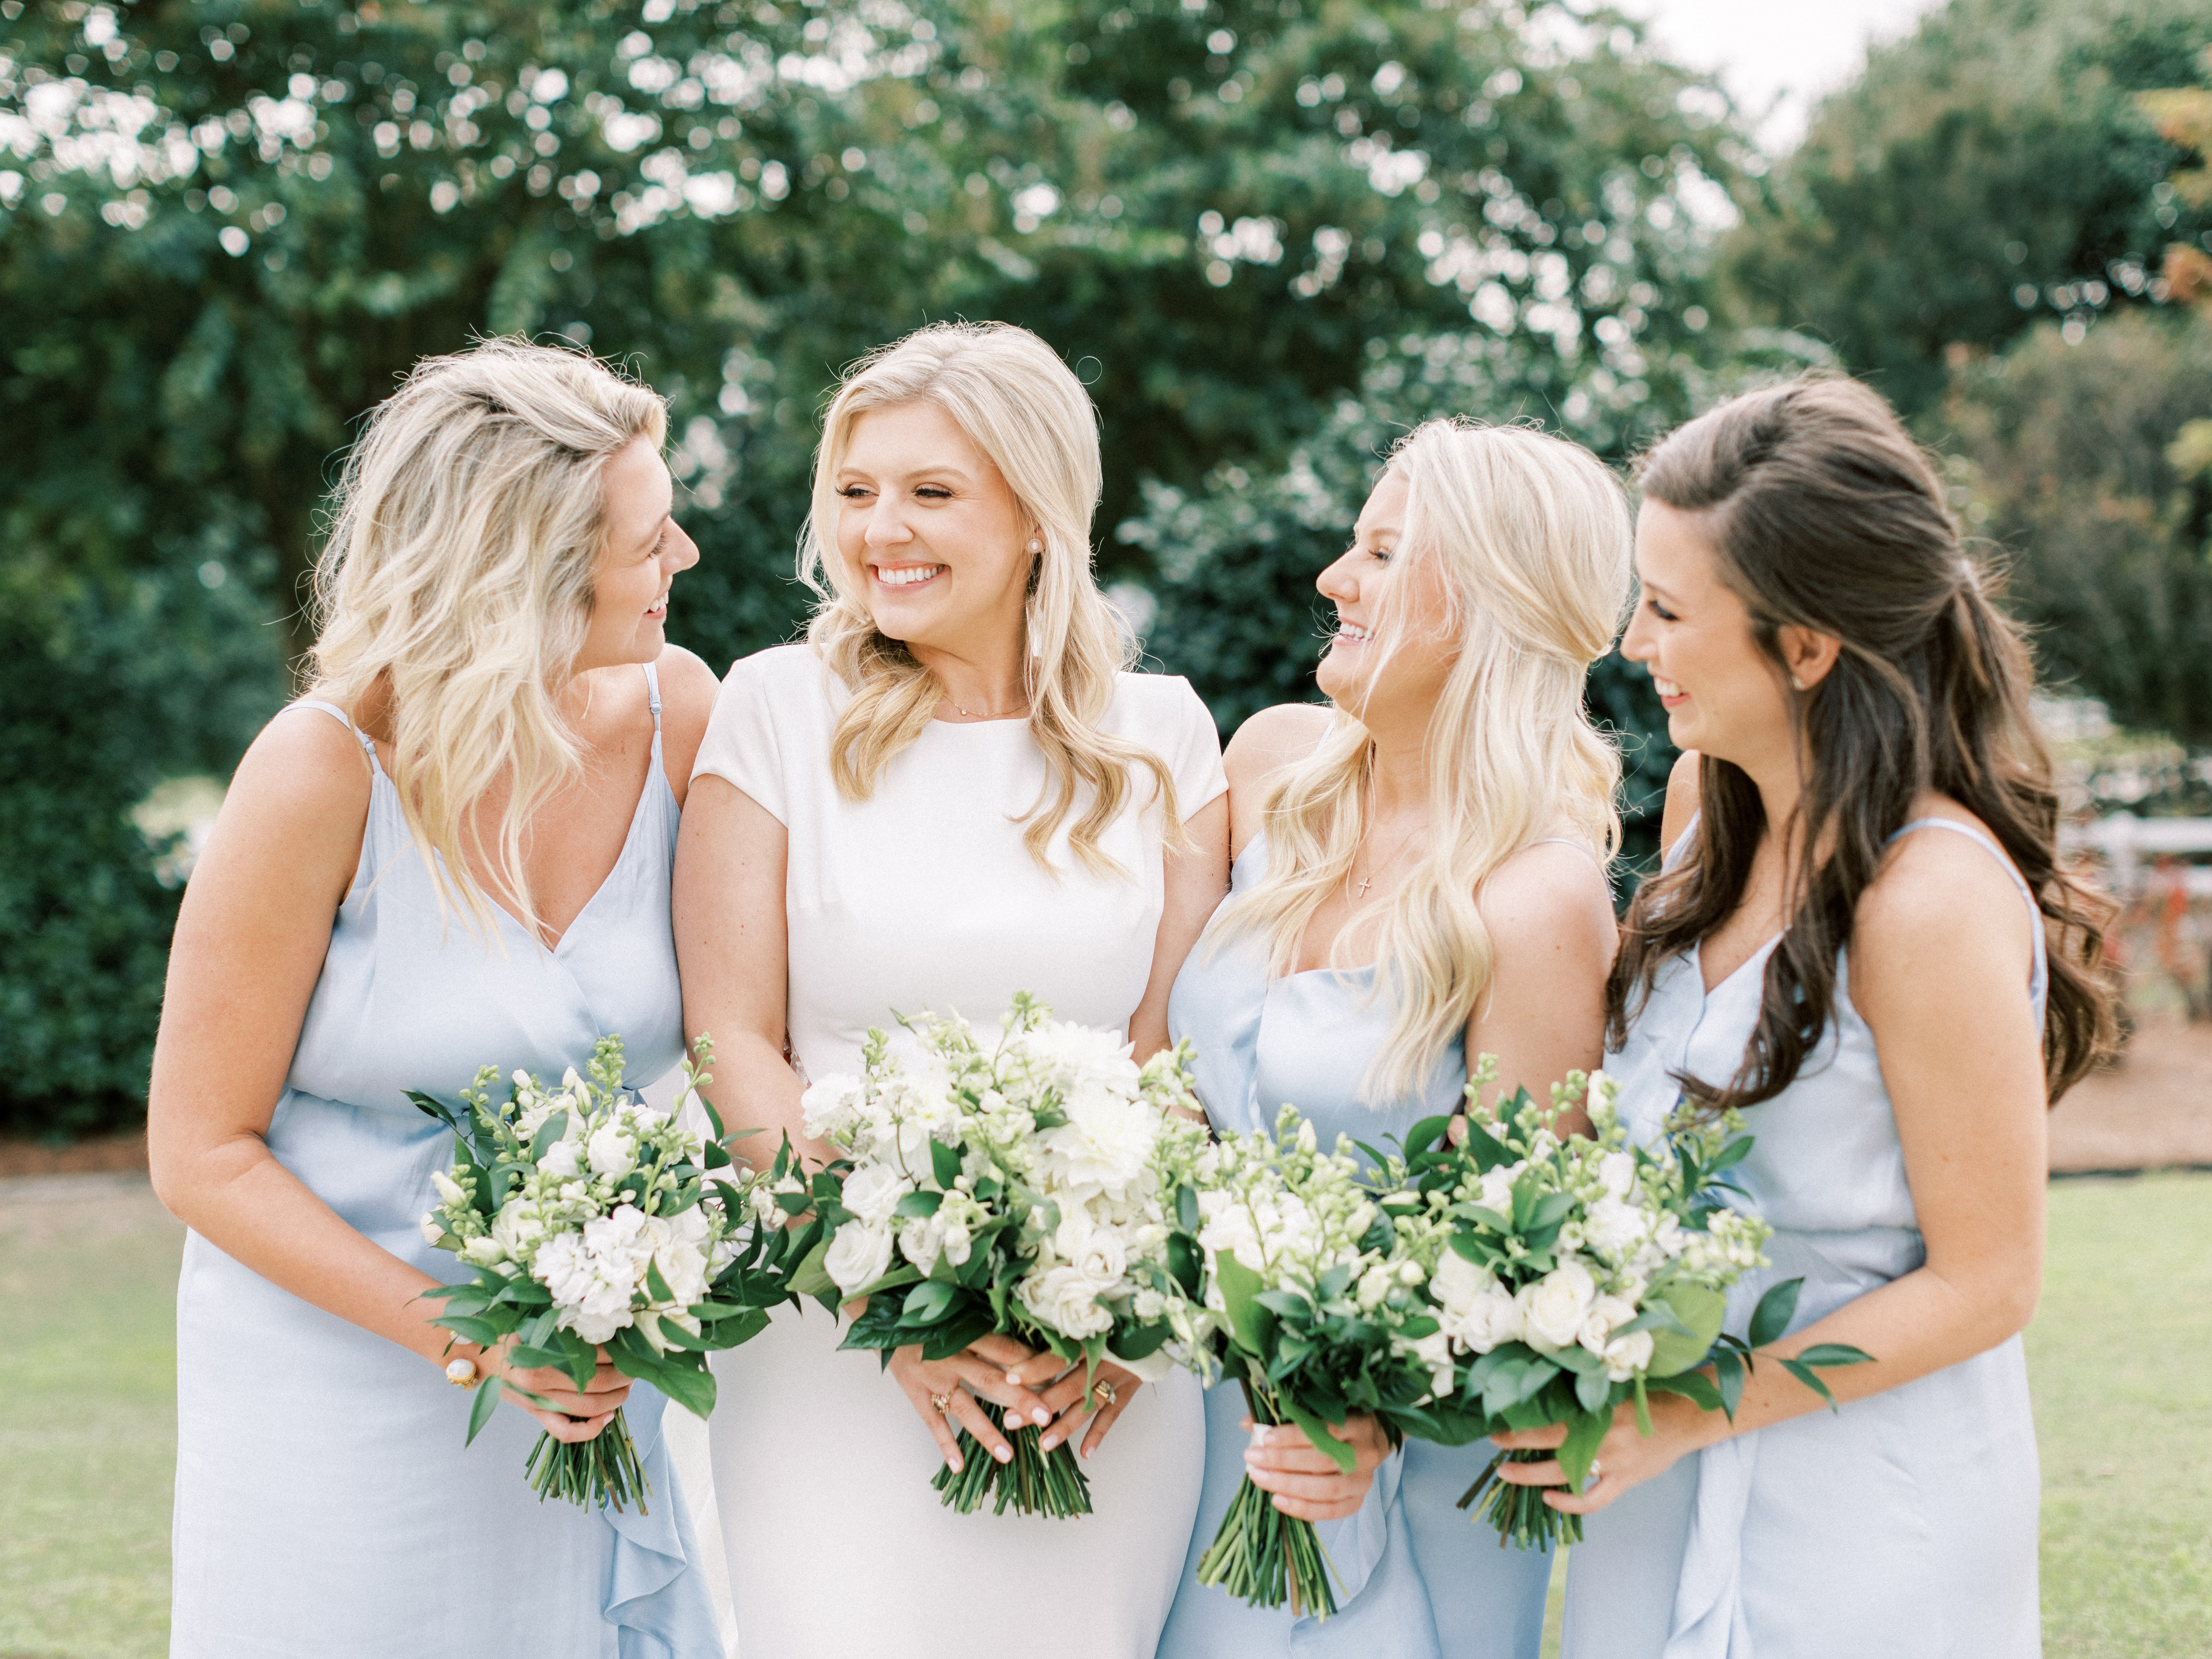 Heather Webster Photo Bride and Bridesmaids Laughing Garner Wedding